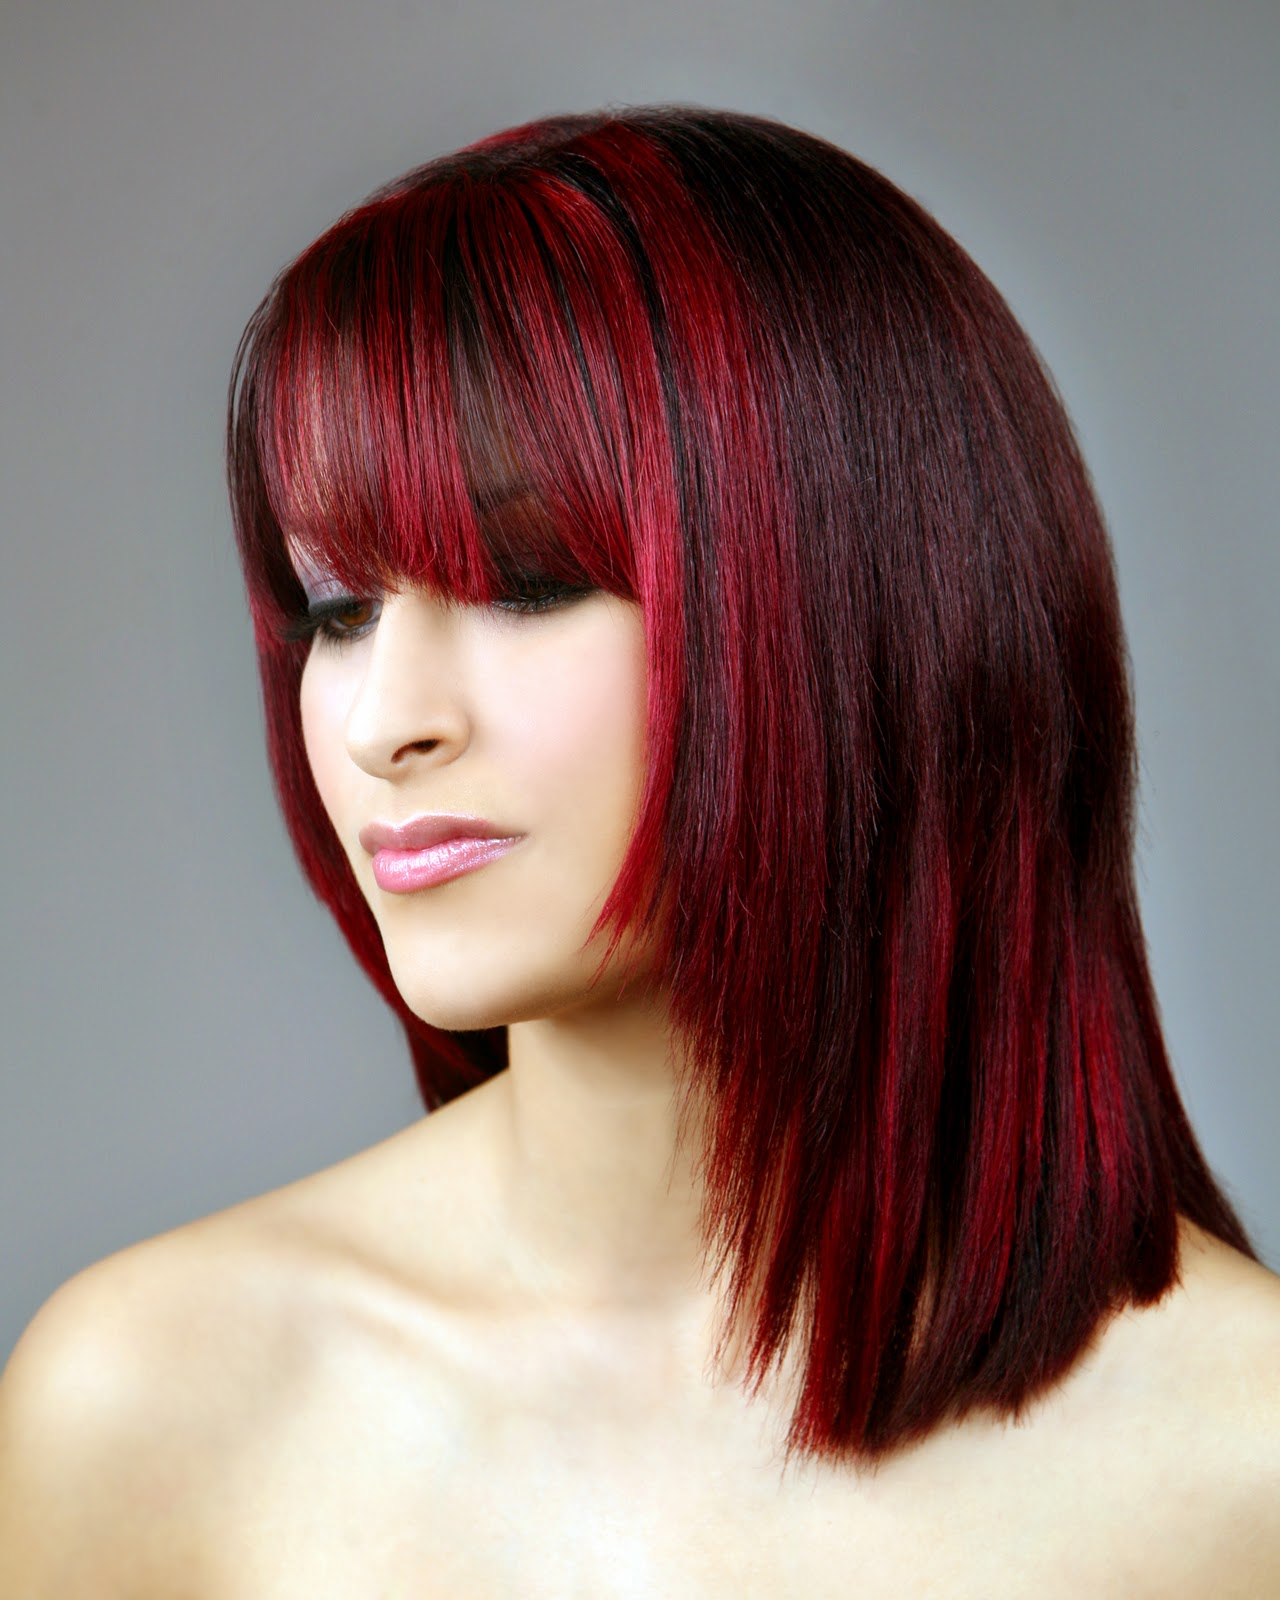 Hair Color Photos Blonde Brunette Black Red